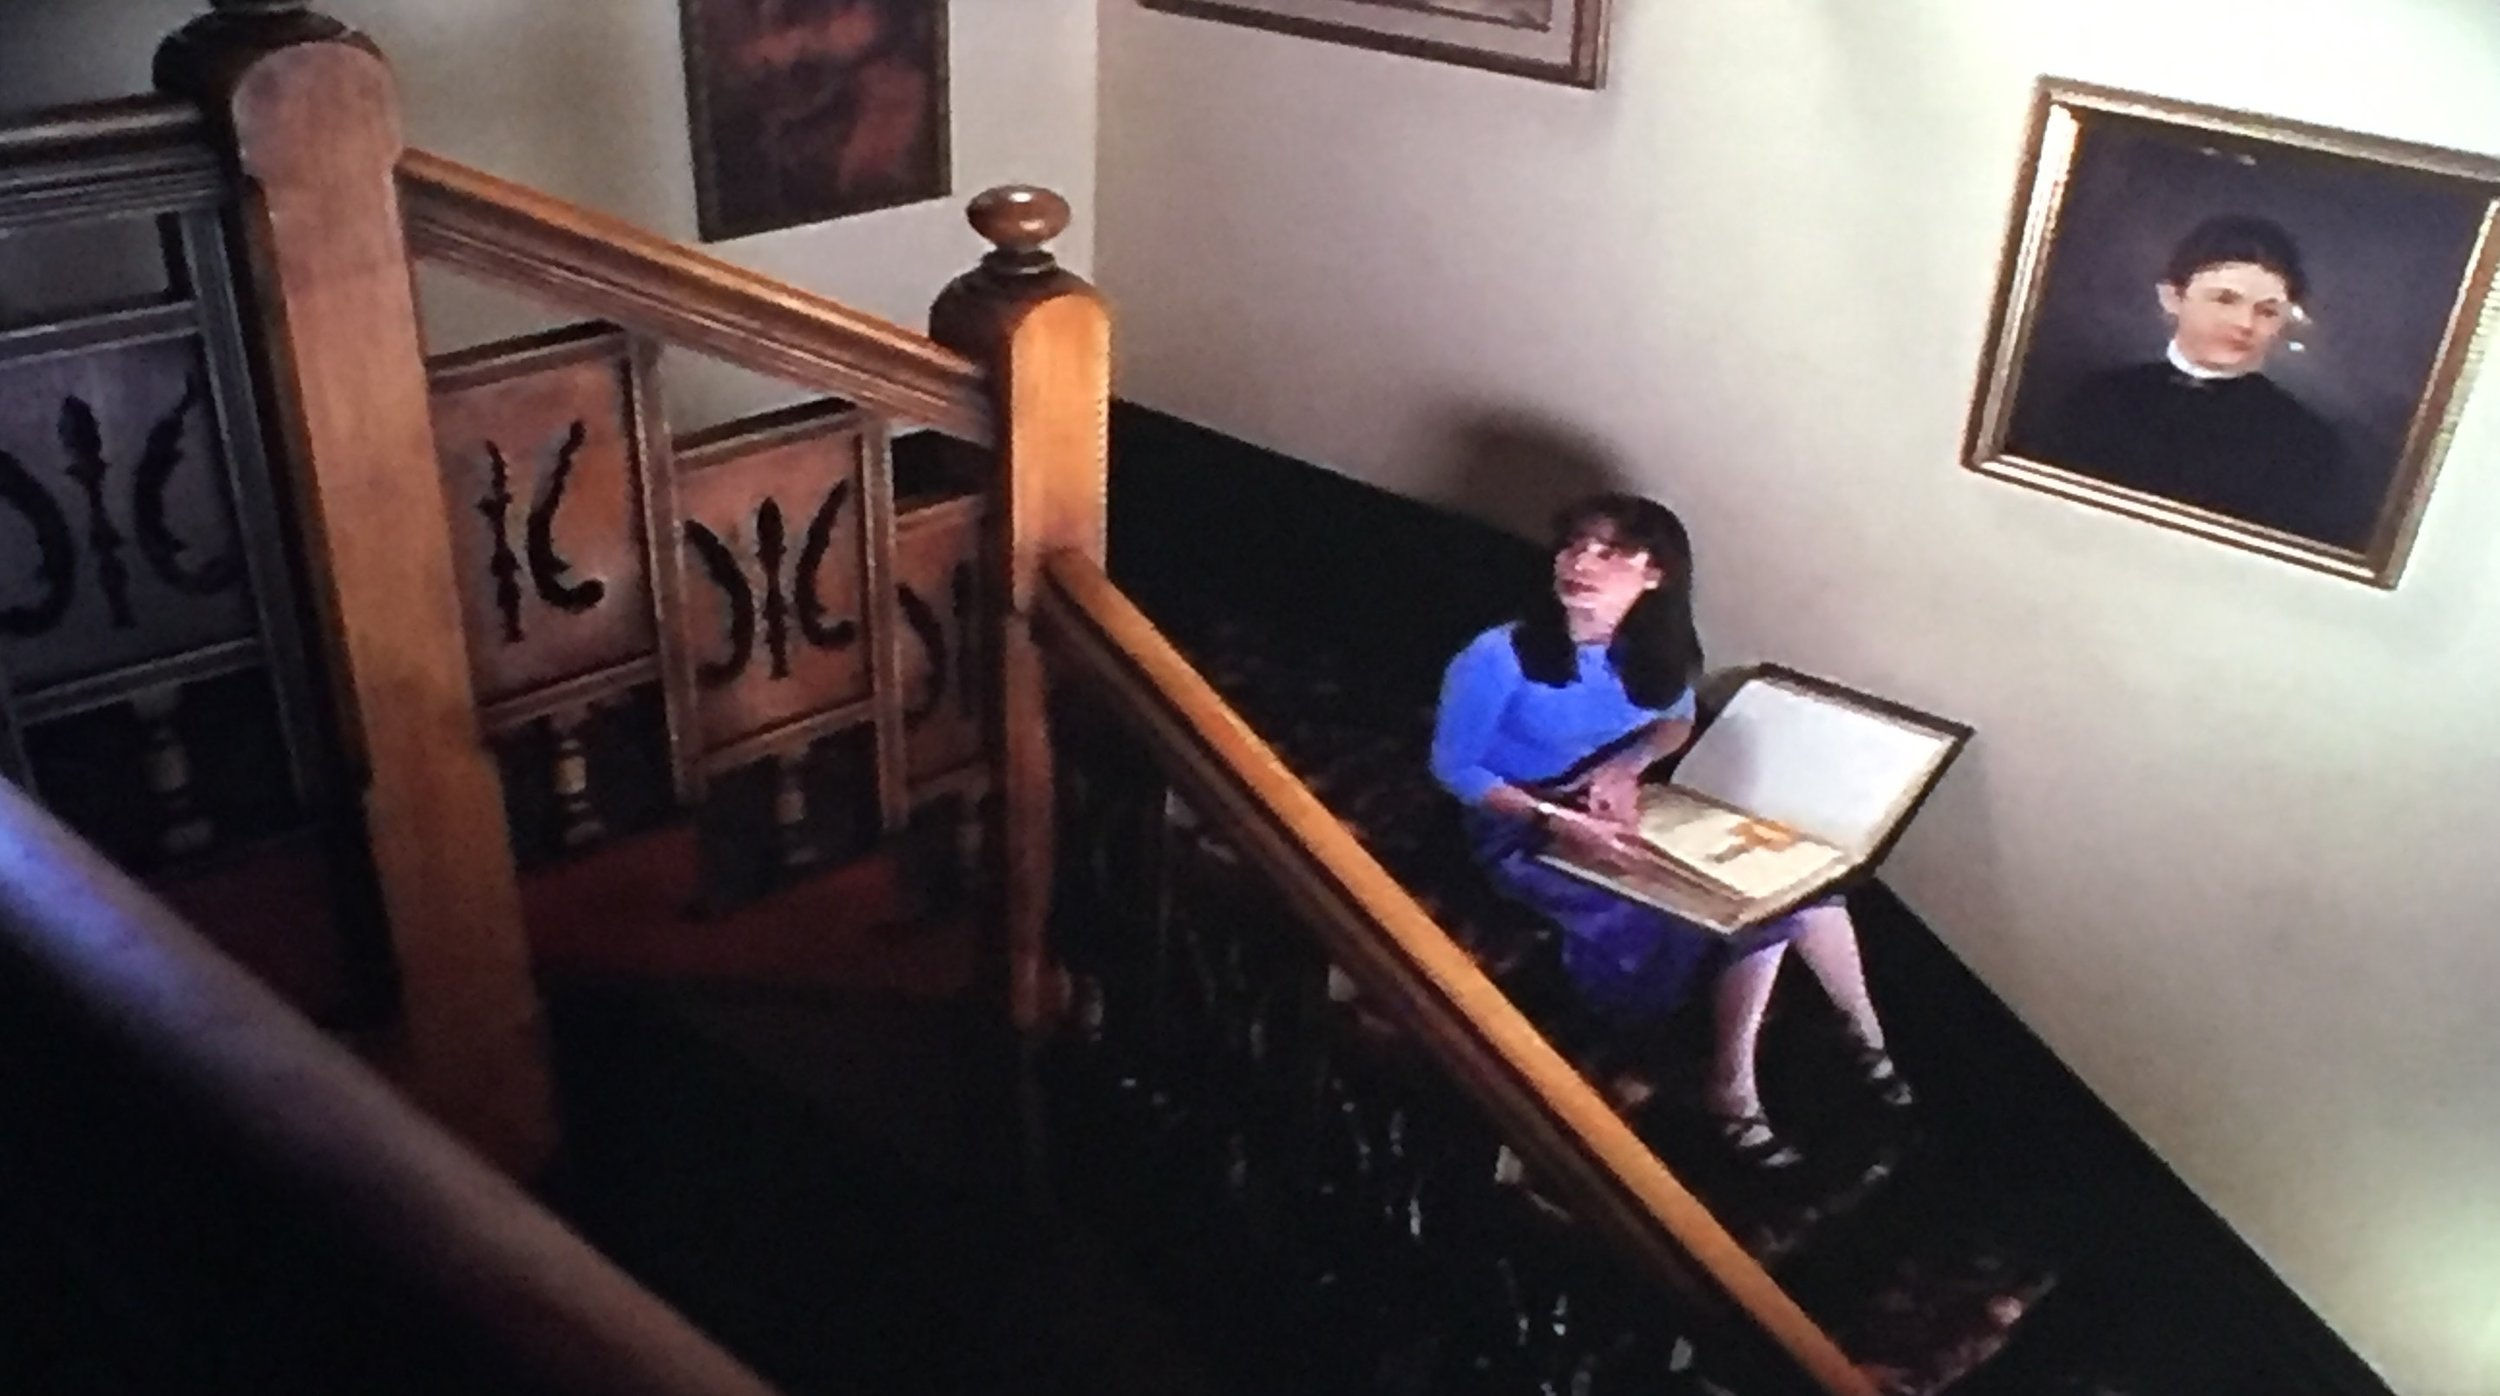 Piper sits on the stairs, reading the Book of Shadows...